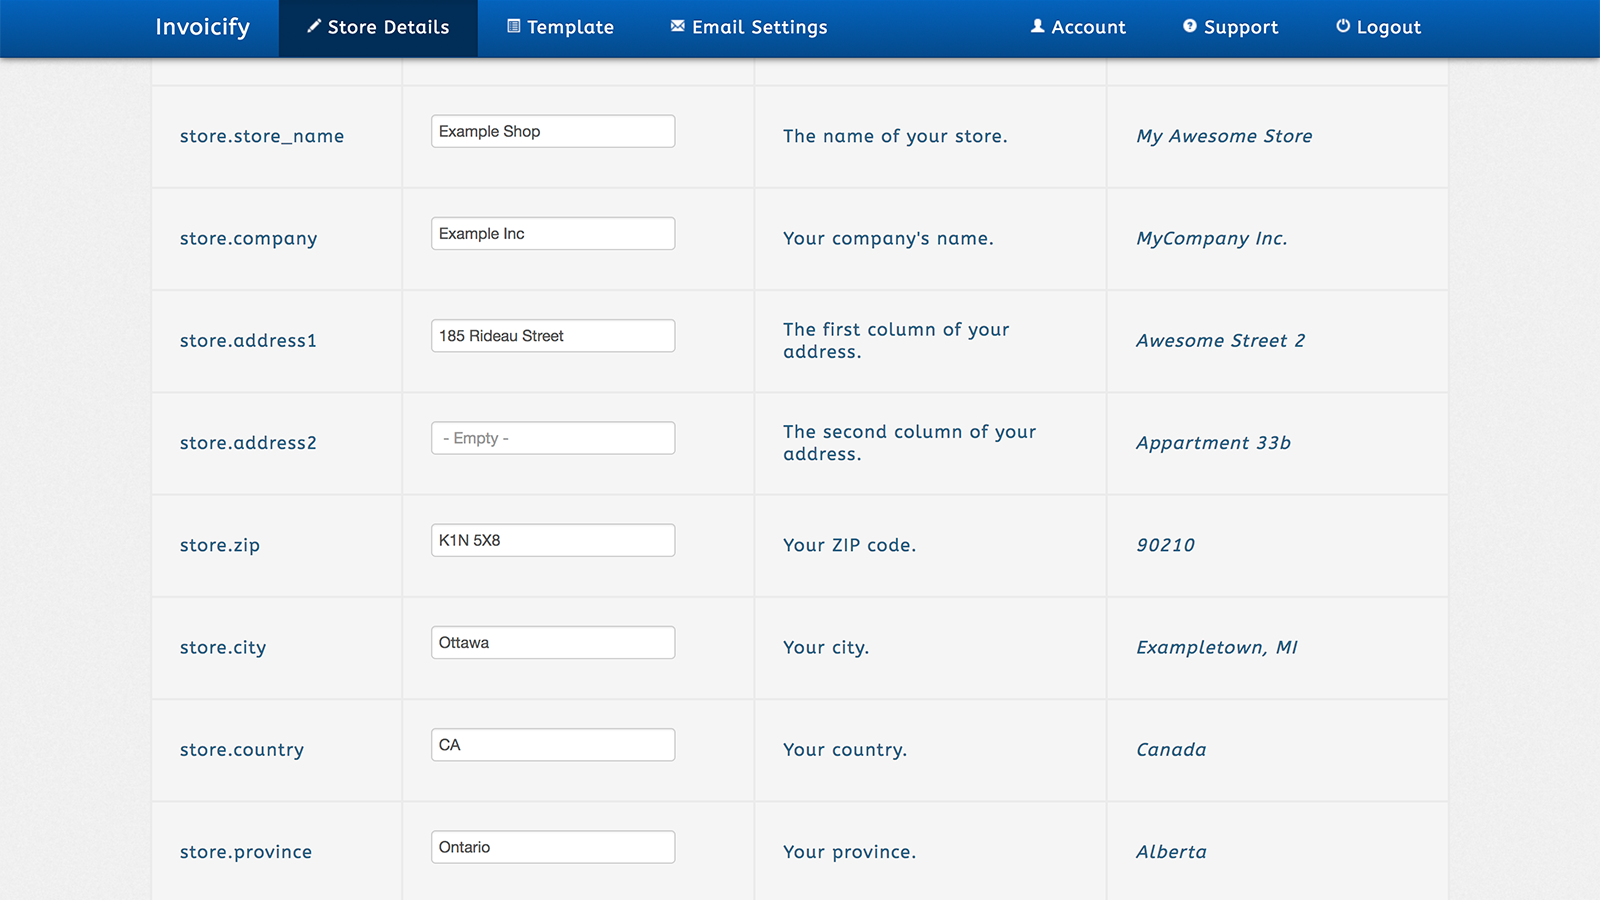 Update your store or invoice details at any time in the settings